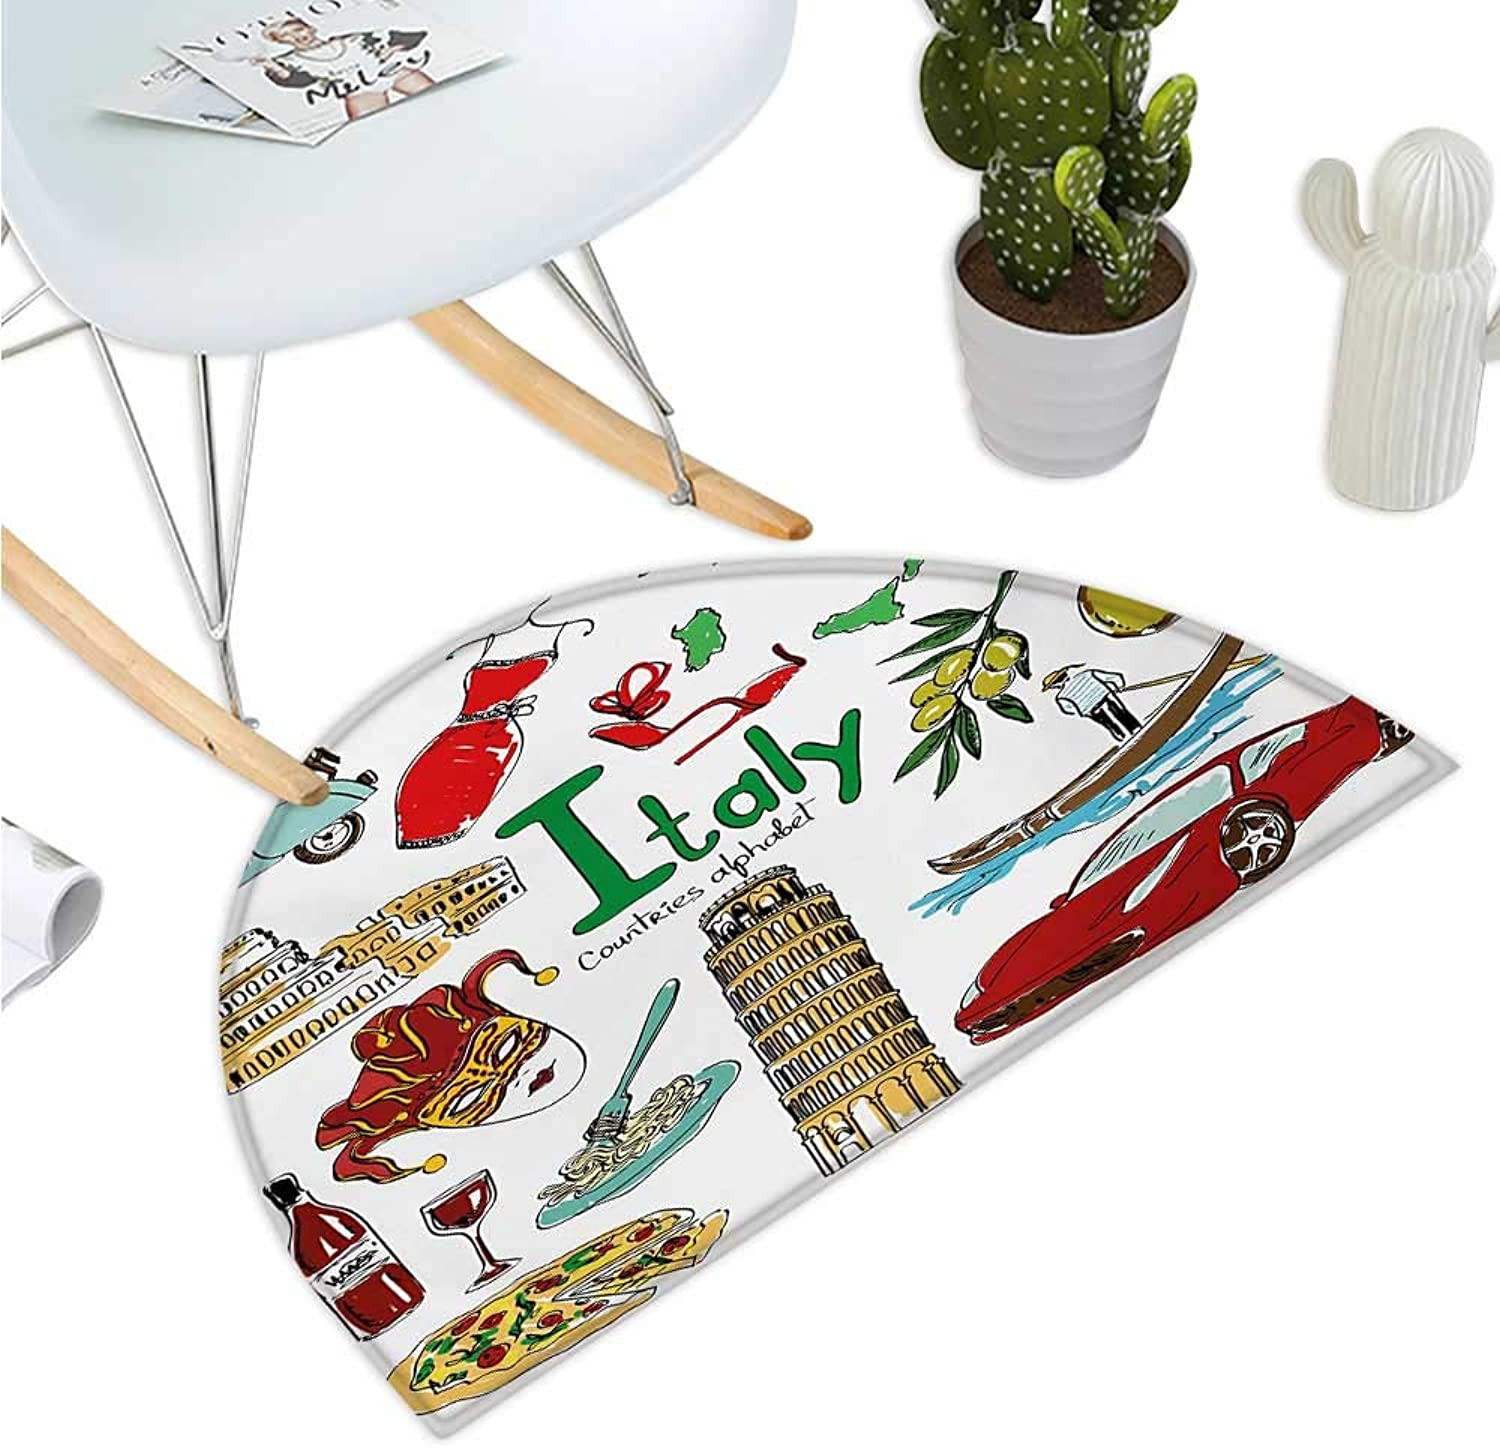 Semicircular Cushion Fun colorful Sketch Collection  Icons Countries Alphabet Landmarks Food Culture Entry Door Mat H 47.2  xD 70.8  Multicolor